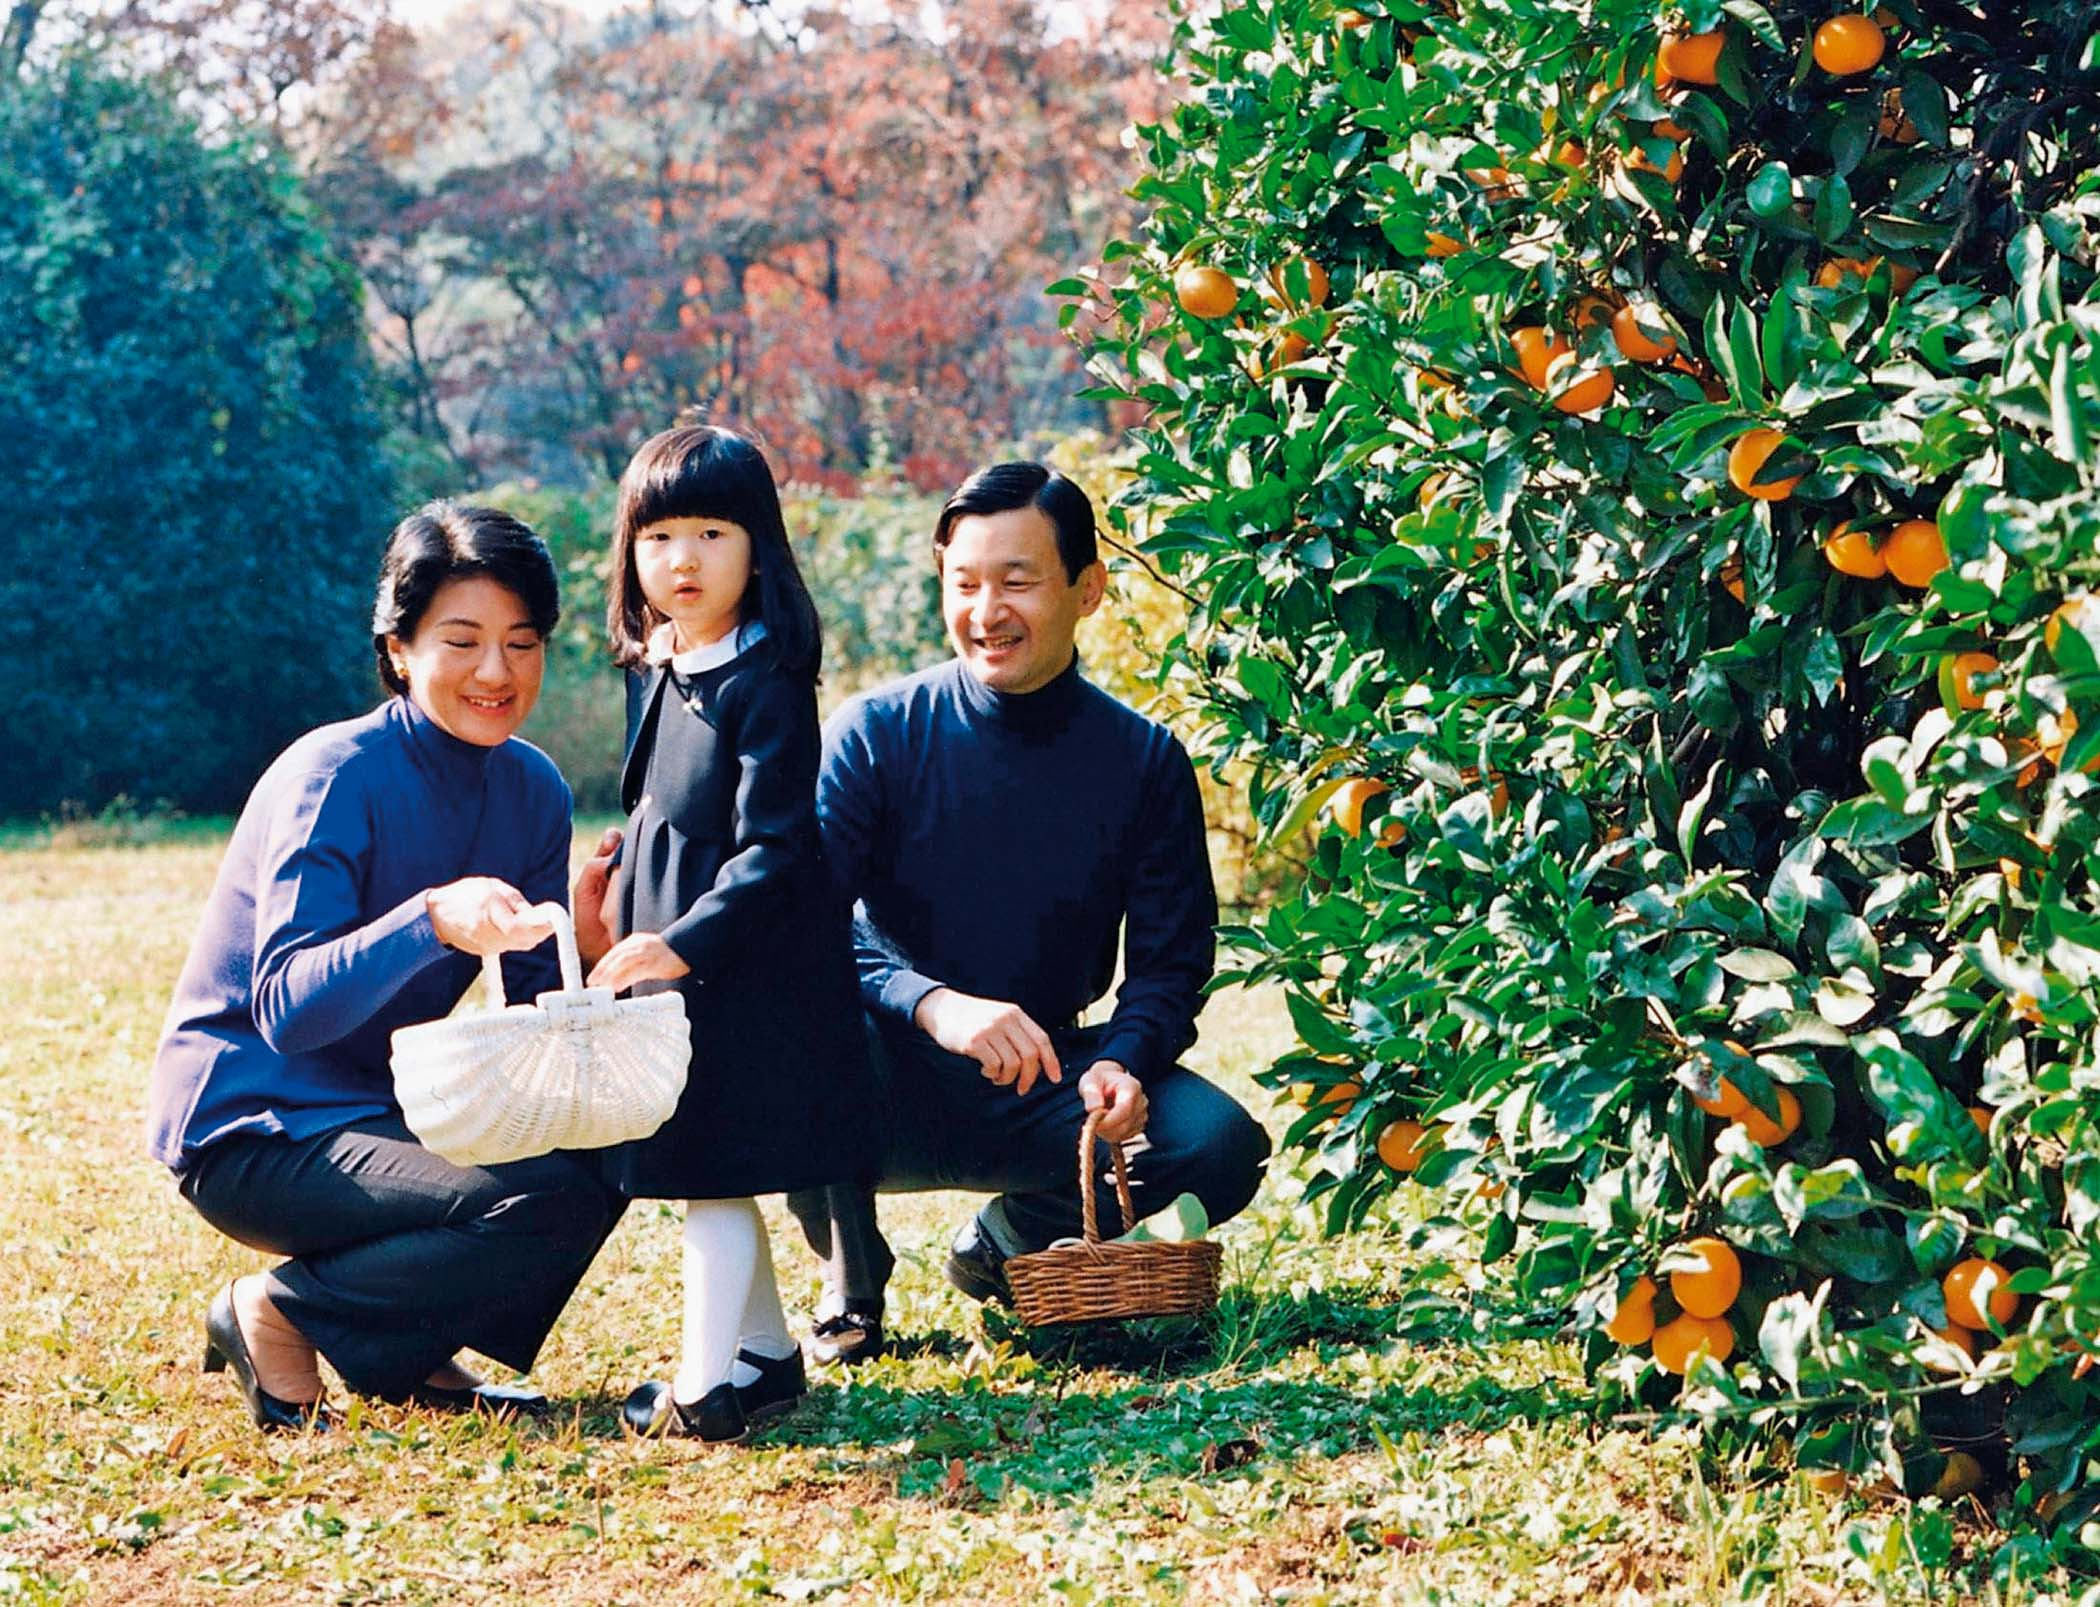 TOKYO - NOVEMBER 30: (EDITORIAL USE ONLY) In this Handout Photo released on December 1, 2005 by the Imperial Household Agency, Japan's Princess Aiko (C) enjoys picking mandarin oranges with her parents, Crown Prince Naruhito and Crown Princess Masako, during a stroll through their Togu Palace residence garden on November 30, 2005 in Tokyo, Japan. Aiko, the only child of Japan's imperial heir Crown Prince Naruhito, celebrates her fourth birthday today. (Photo by The Imperial Household Agency via Getty Images)